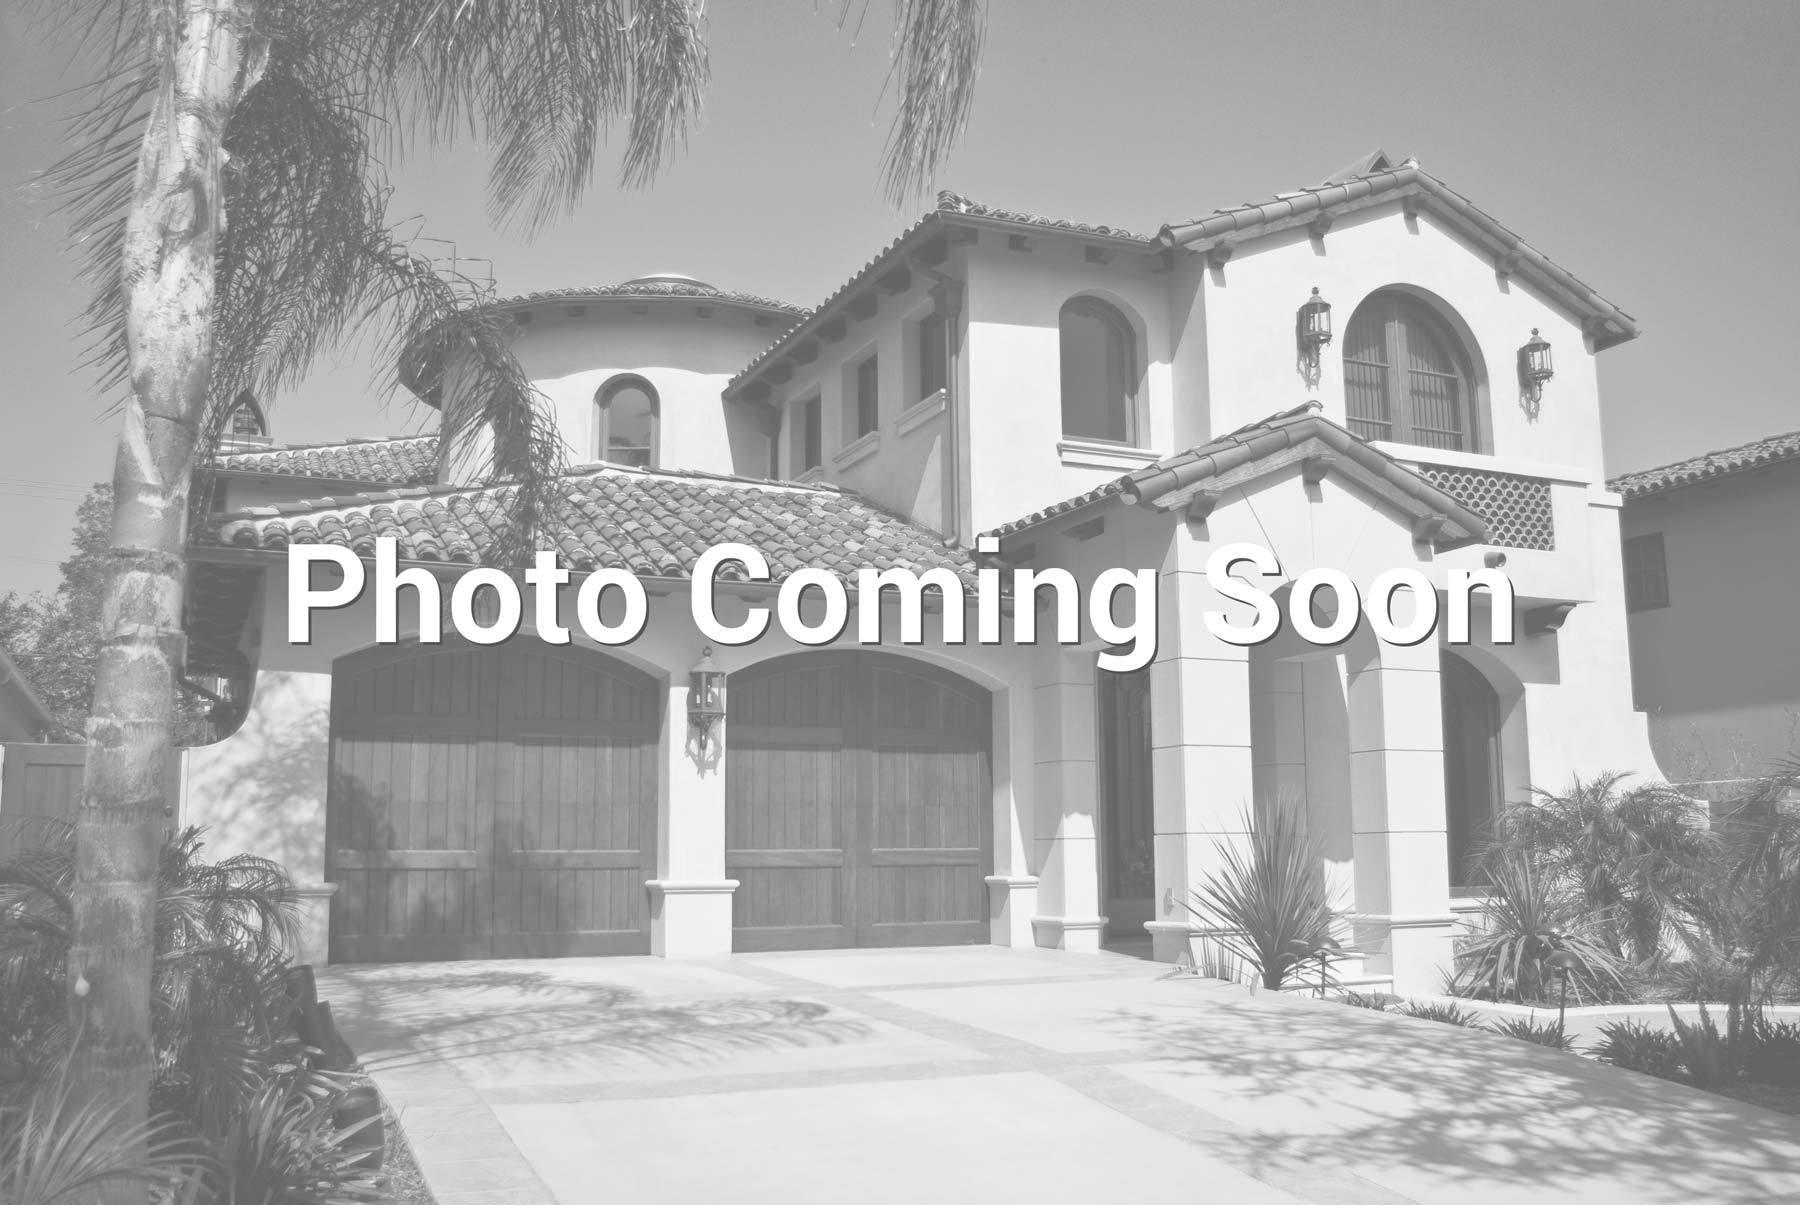 $1,150,000 - 4Br/4Ba - Home for Sale in Windgate Ranch Phase 2 Plat D Unit 1, Scottsdale